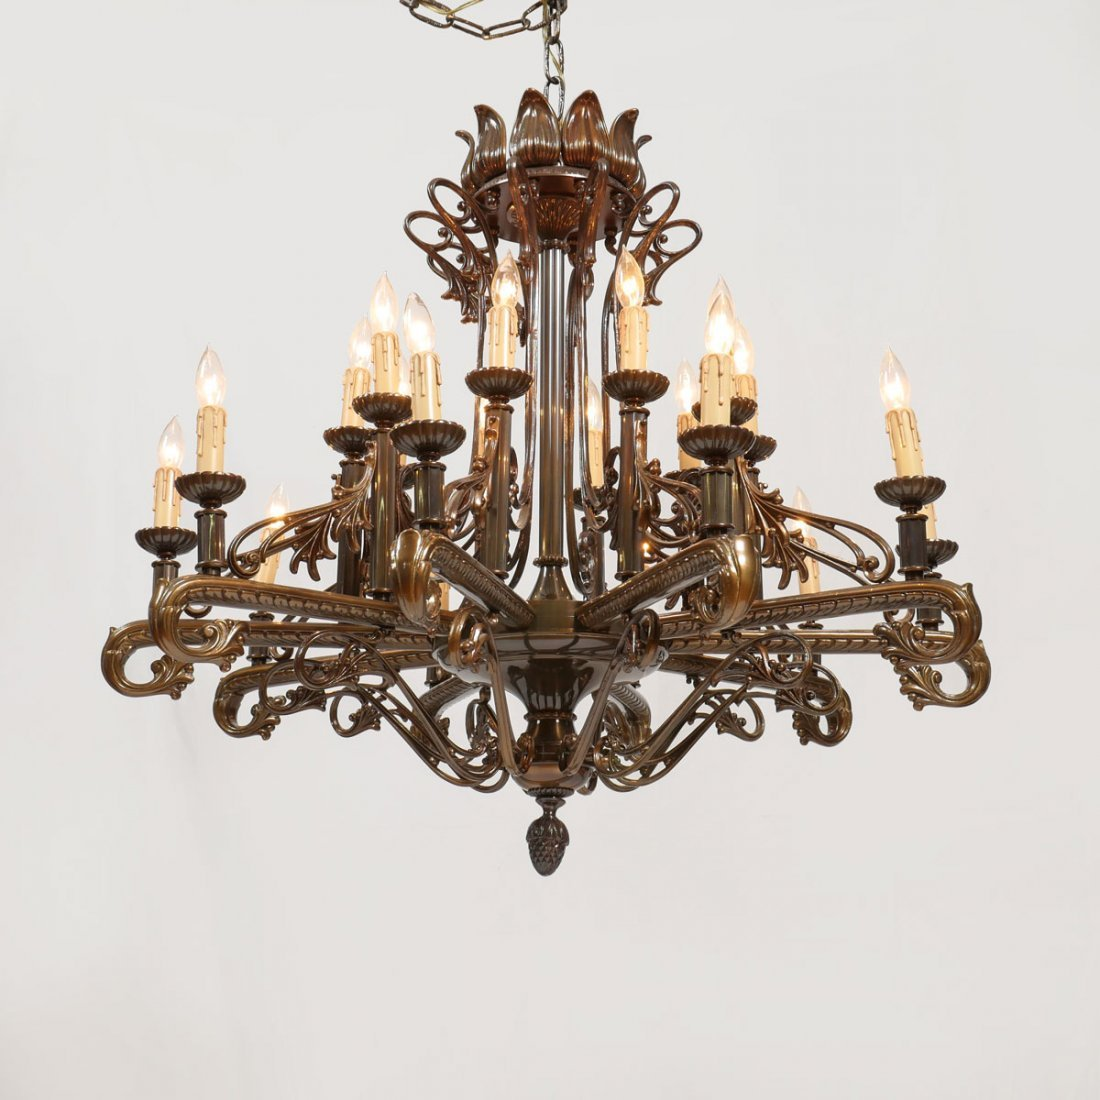 20 LIGHT PATINATED CHANDELIER